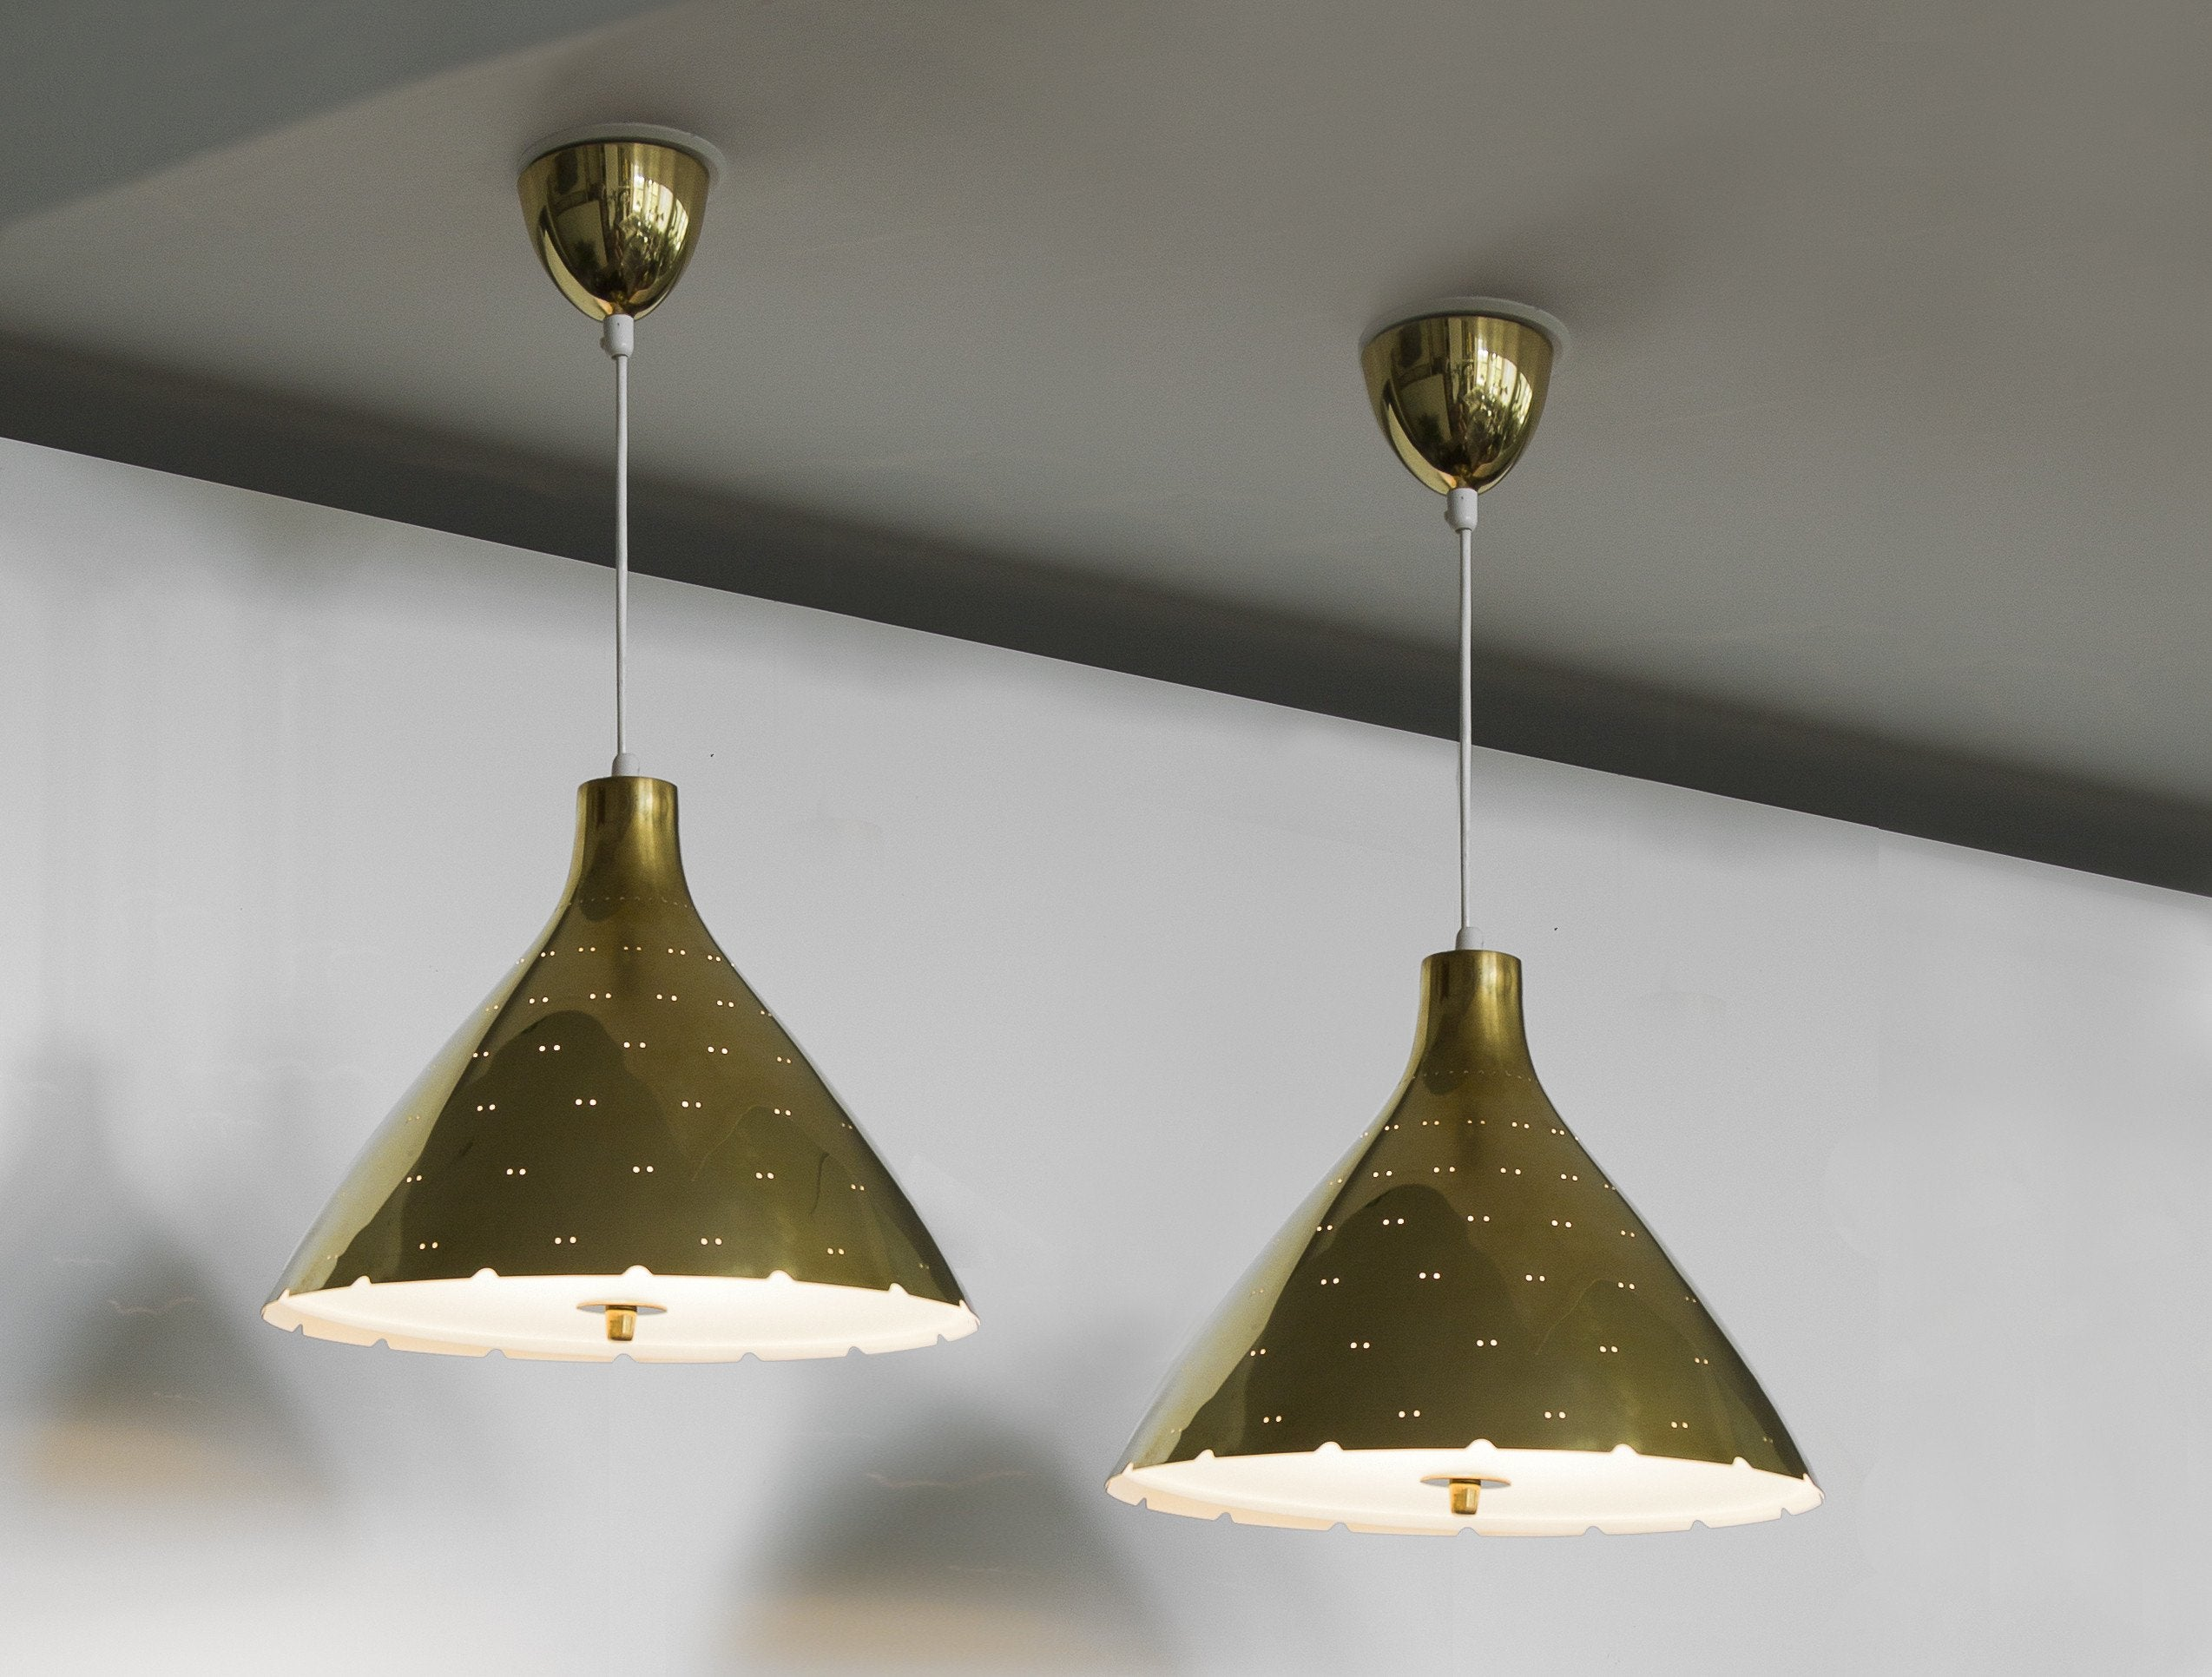 Pair of Paavo Tynell Ceiling Lamps by Taito Oy 1940s